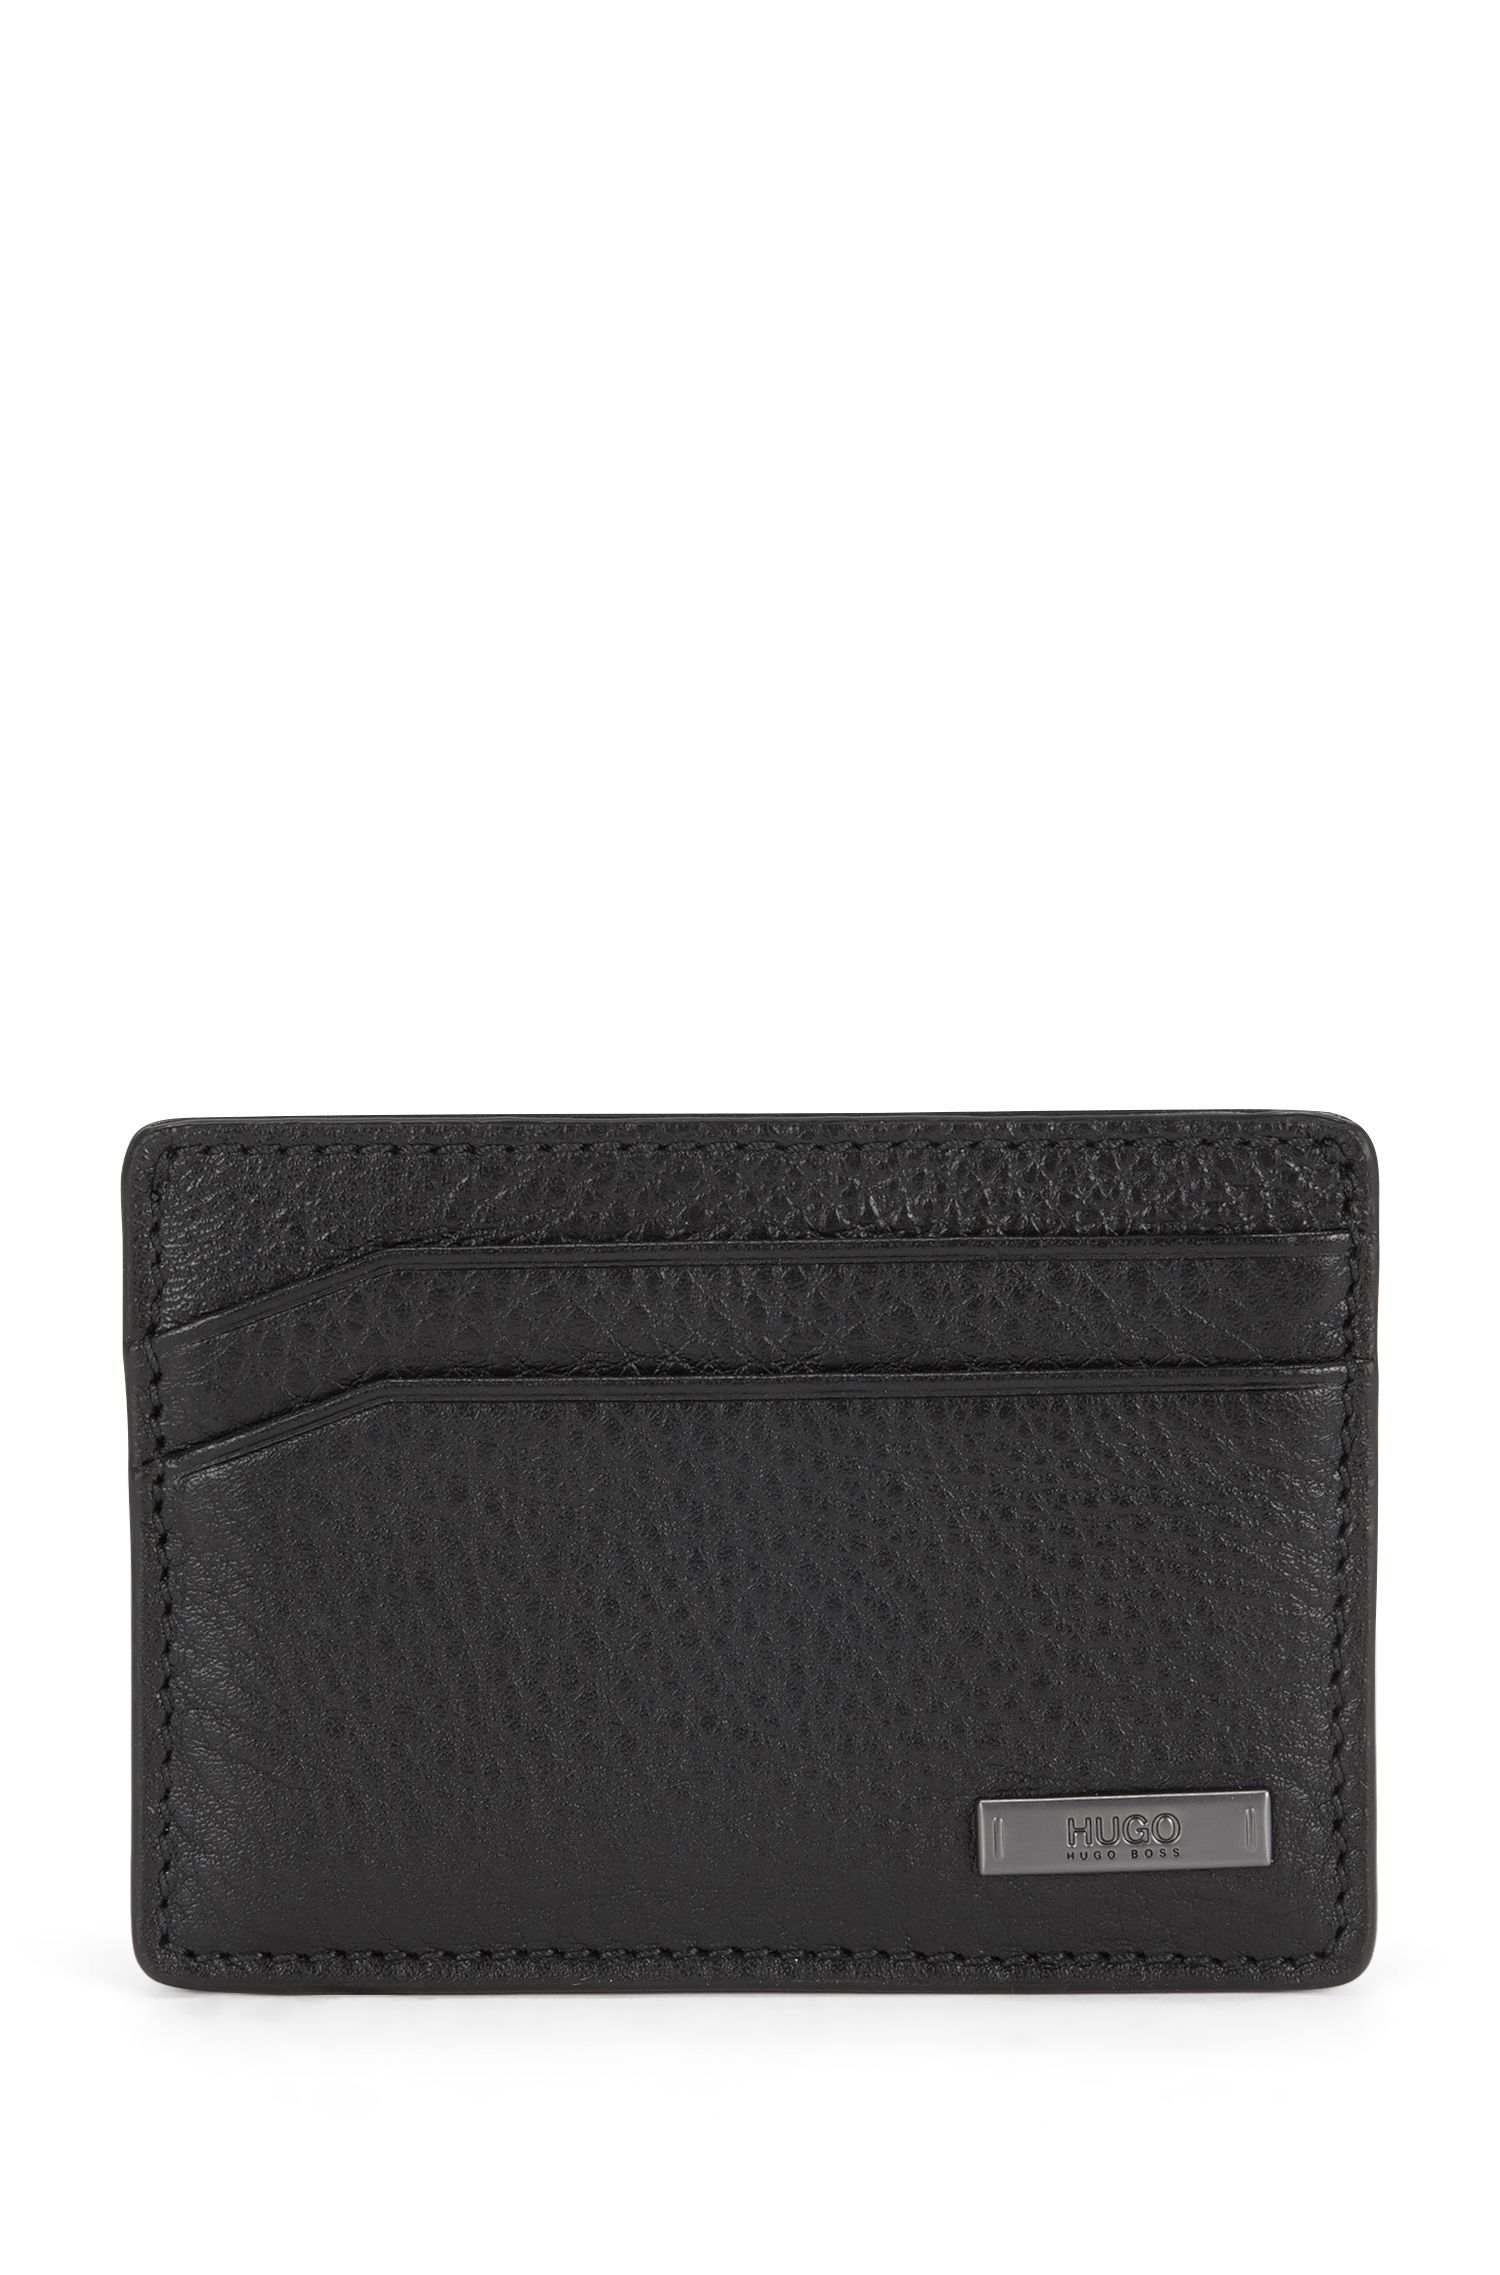 Card case in rich leather